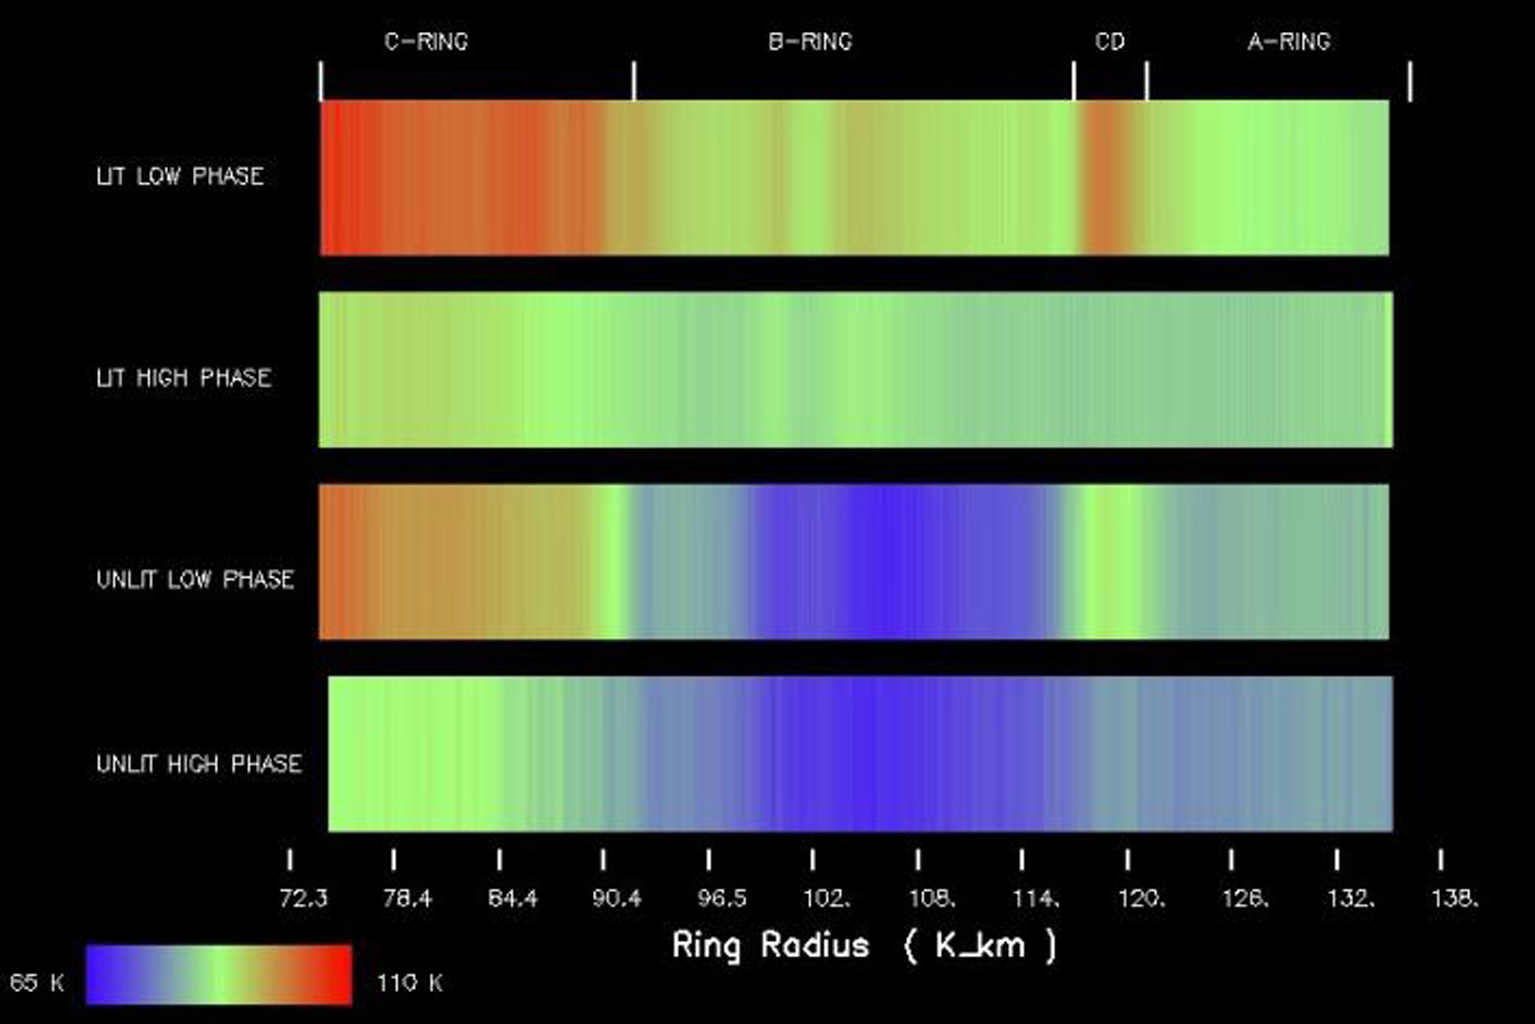 Temperature changes mapped with NASA's Cassini's composite and infrared spectrometer throughout Saturn's main rings show the ring temperatures decreasing with the increase of the Sun-spacecraft-ring angle on both the lit and unlit sides of the rings.